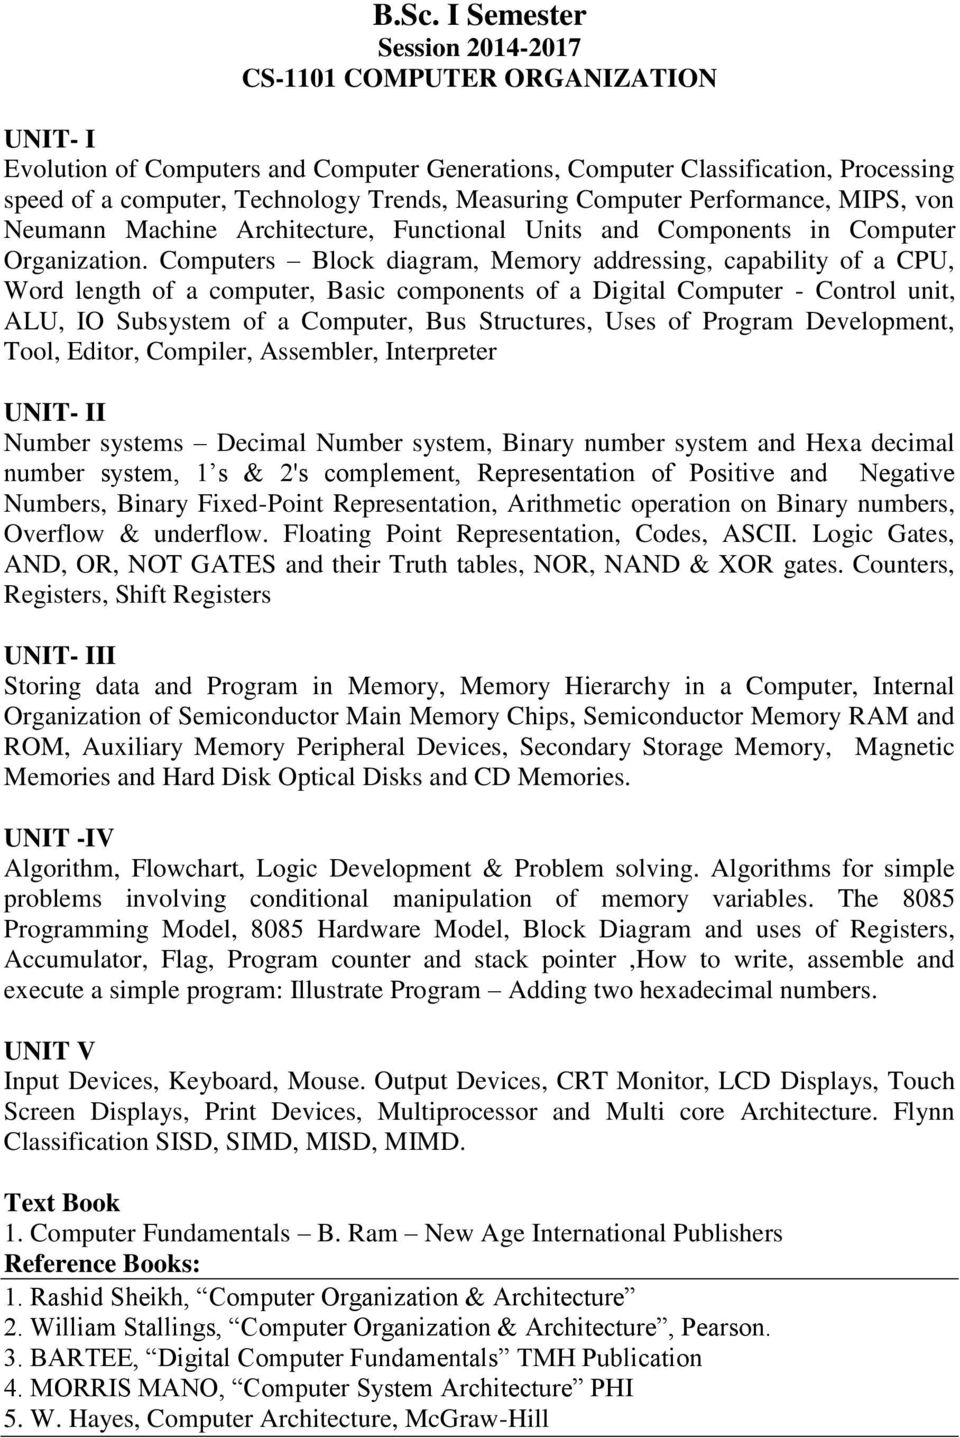 Govt Holkar Science College Indore Department Of Computer Organization Systems Arithmetic Computers Block Diagram Memory Addressing Capability A Cpu Word Length